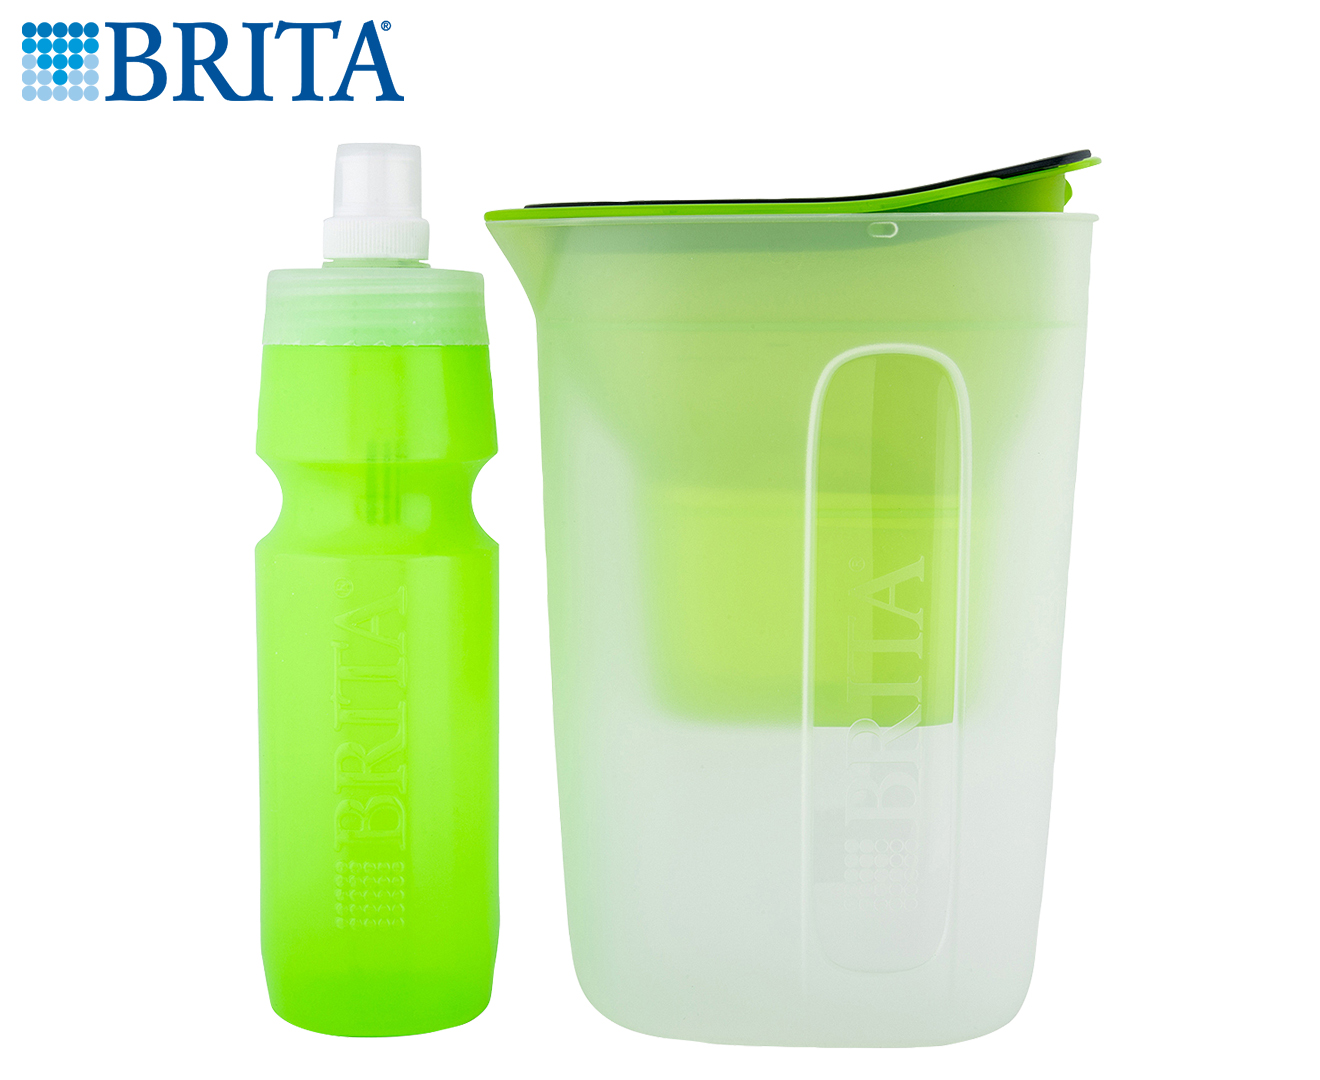 Brita Water Filter Jug Amp Bottle Bundle Green Scoopon